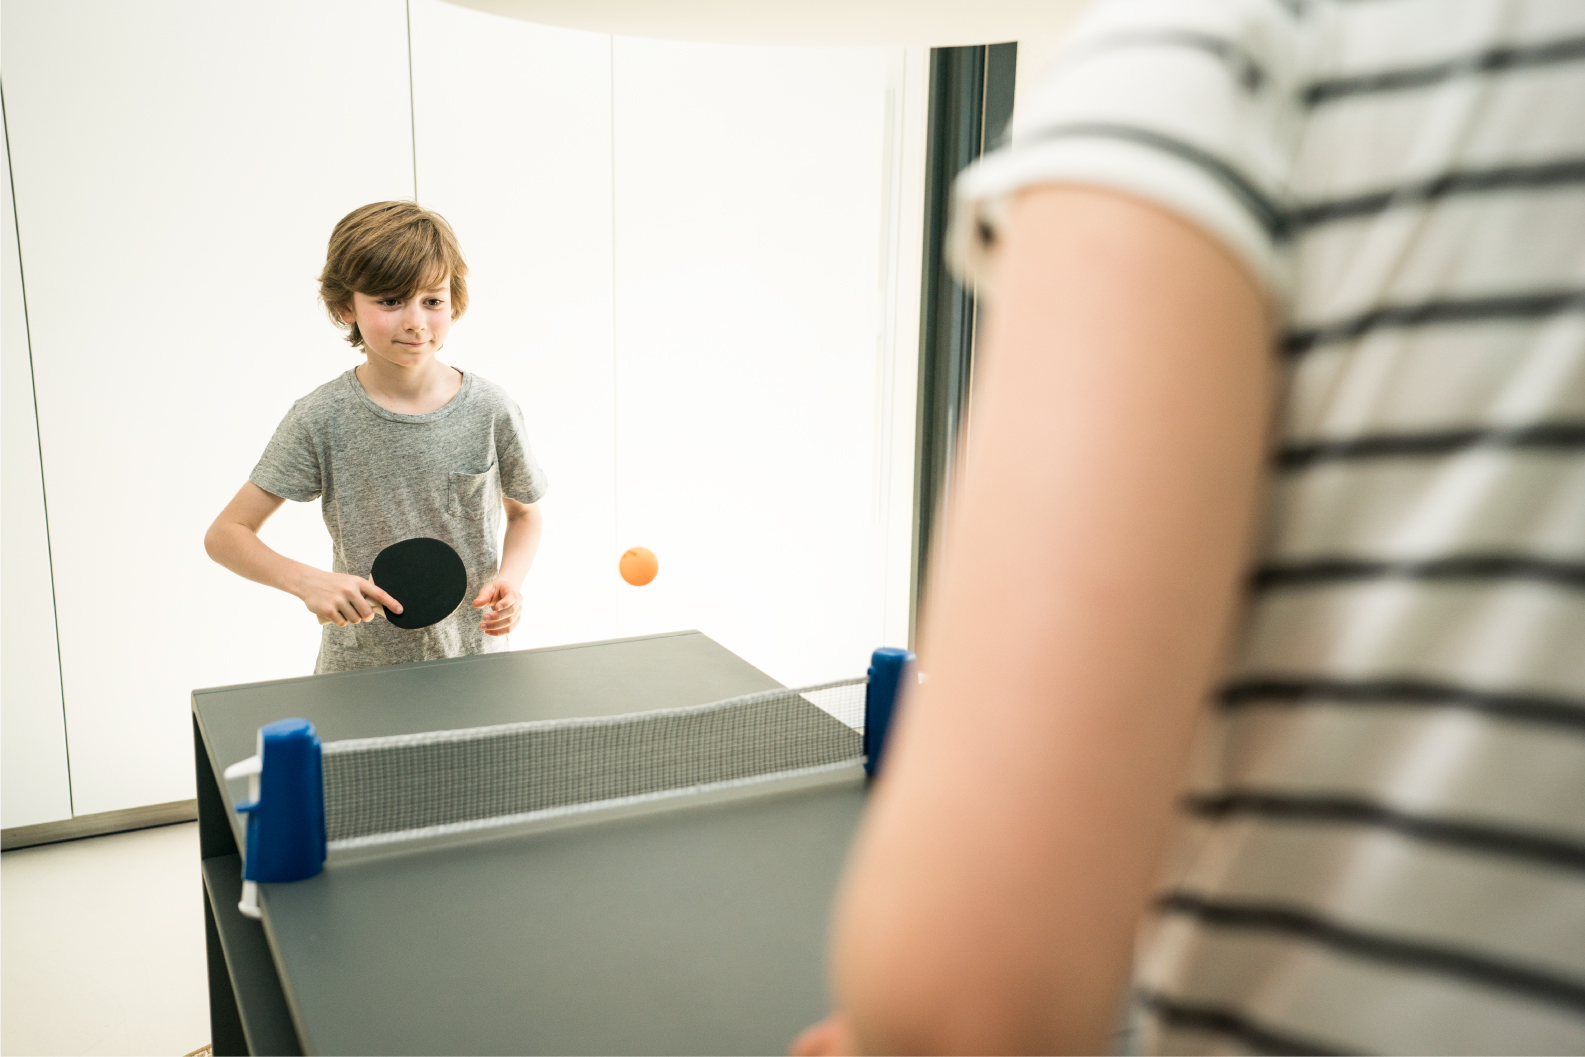 Decathlon's iconic Rollnet product. Making almost any flat surface easily transformed into a table tennis table.